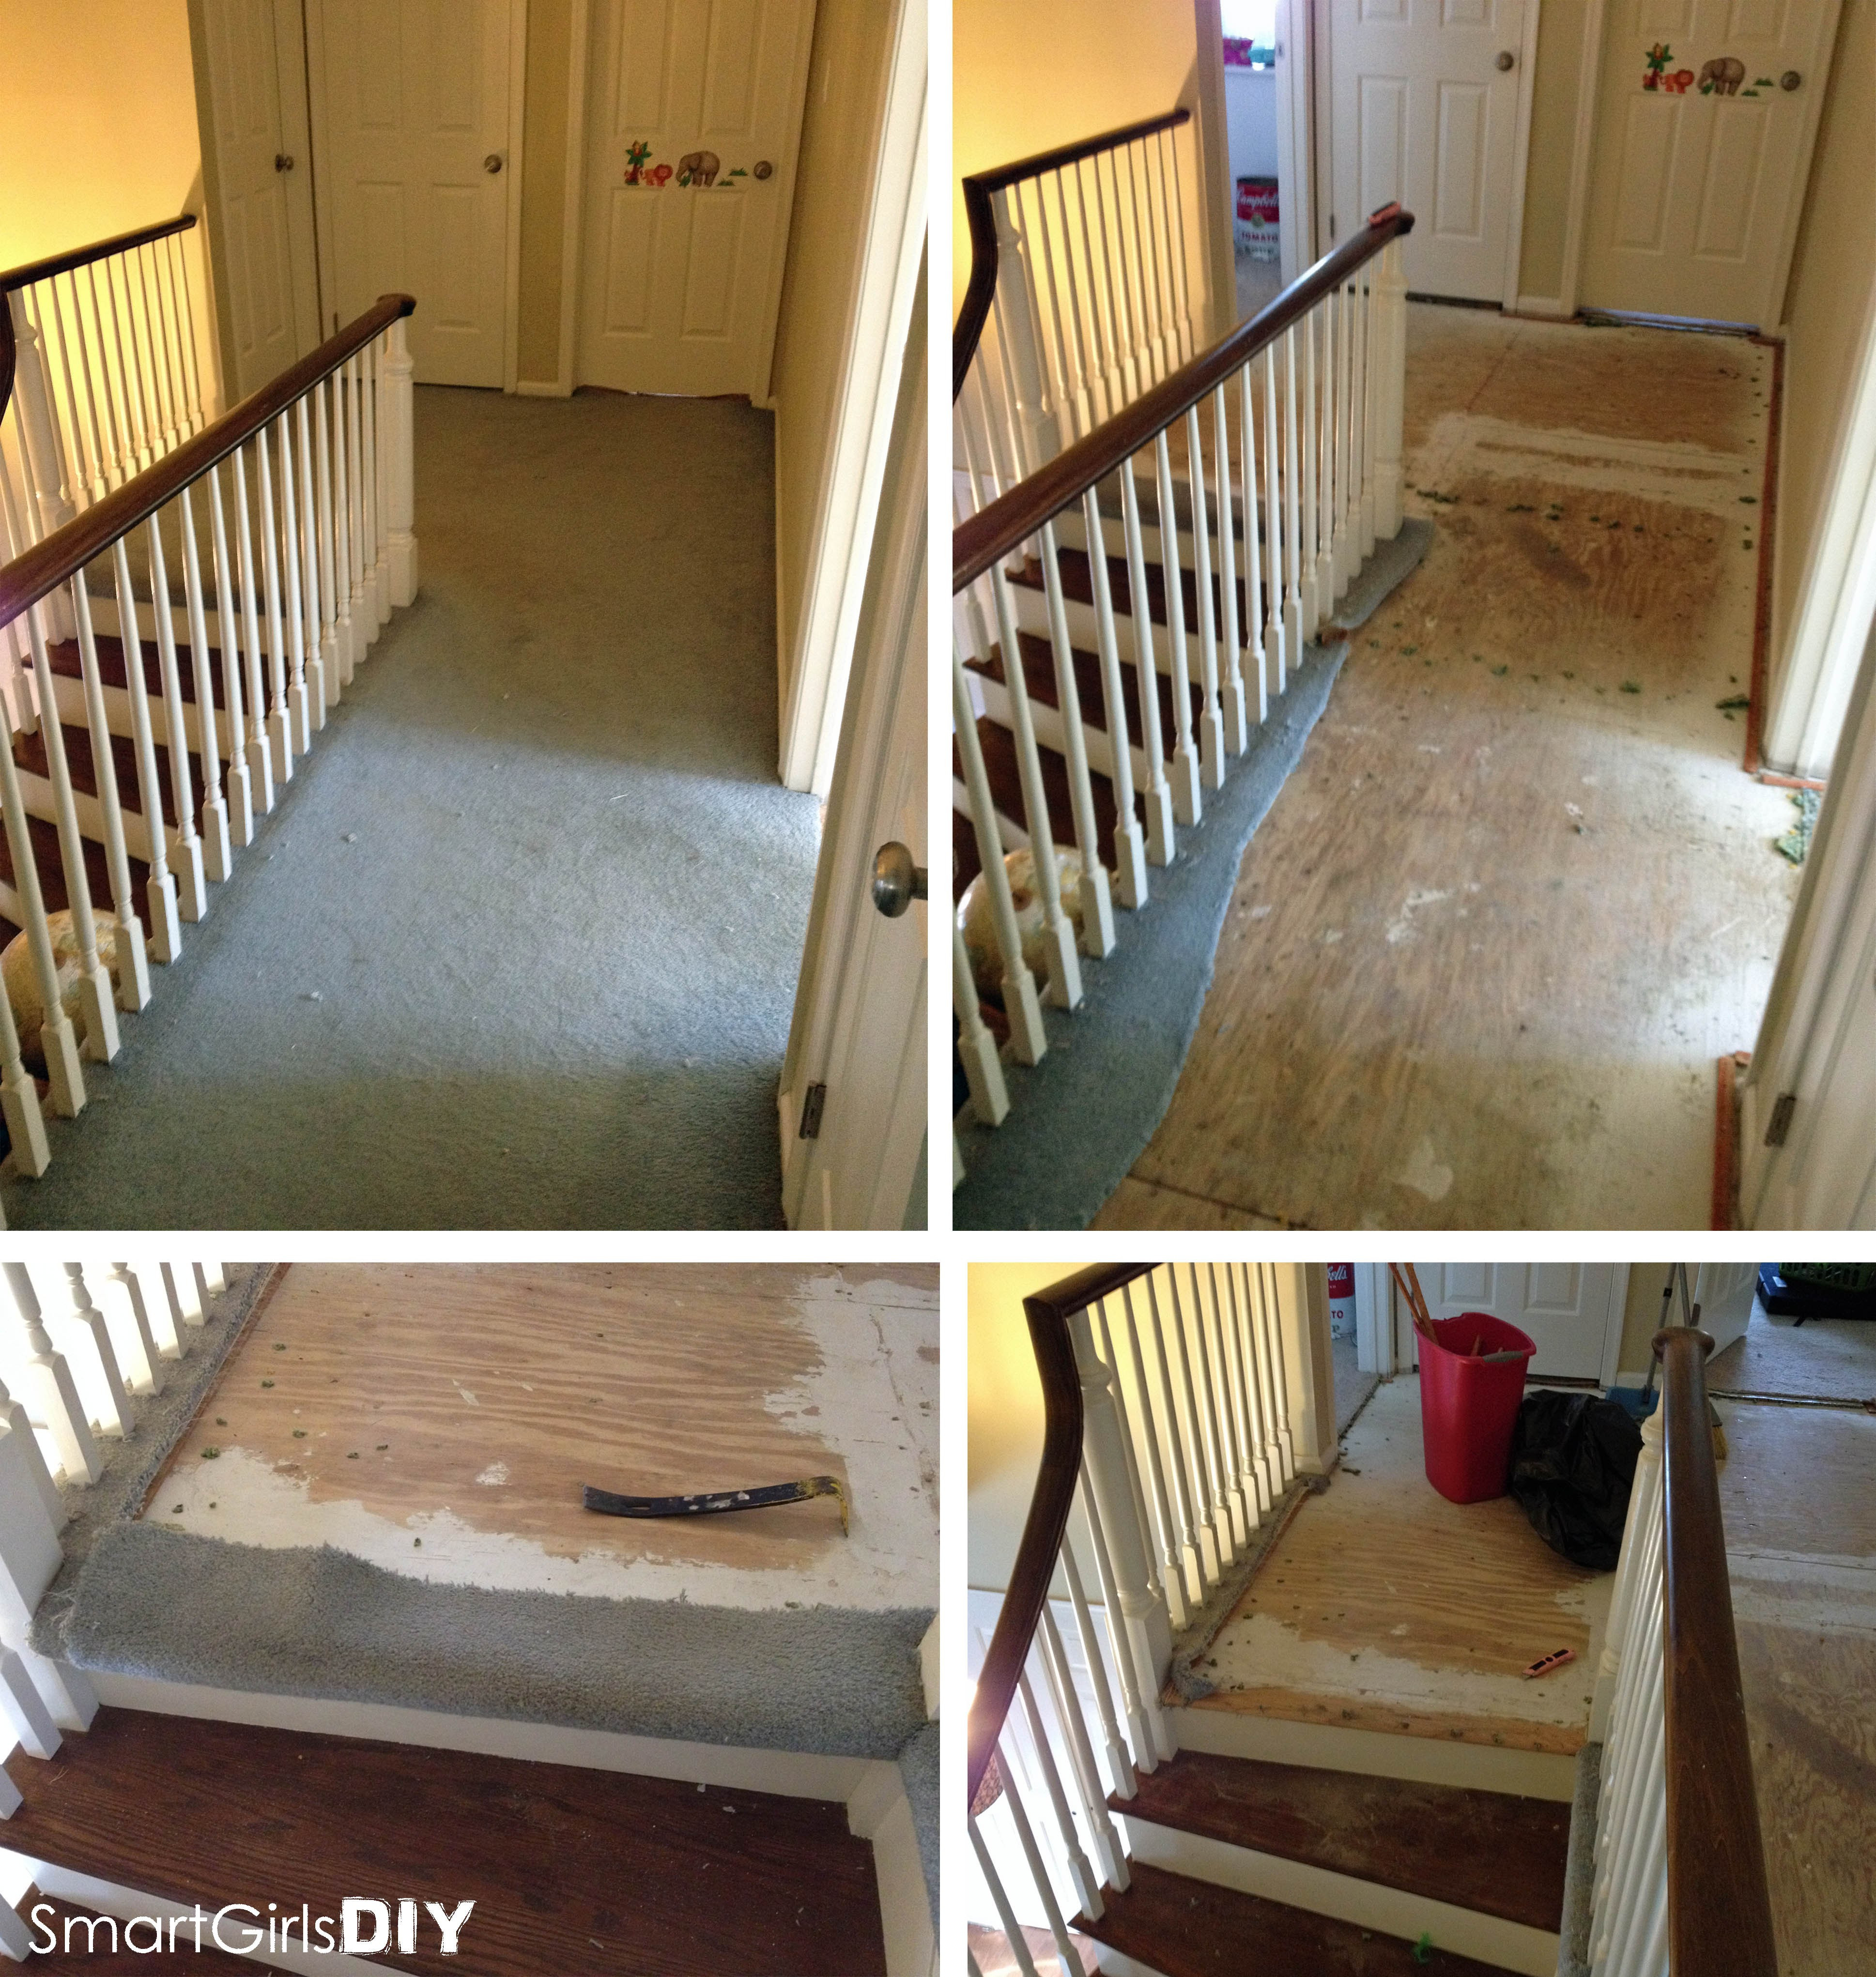 Hardwood Floor Installation Cost Nj Of Upstairs Hallway 1 Installing Hardwood Floors Throughout Removing Carpet From Hallway Installing the Hardwood Floor